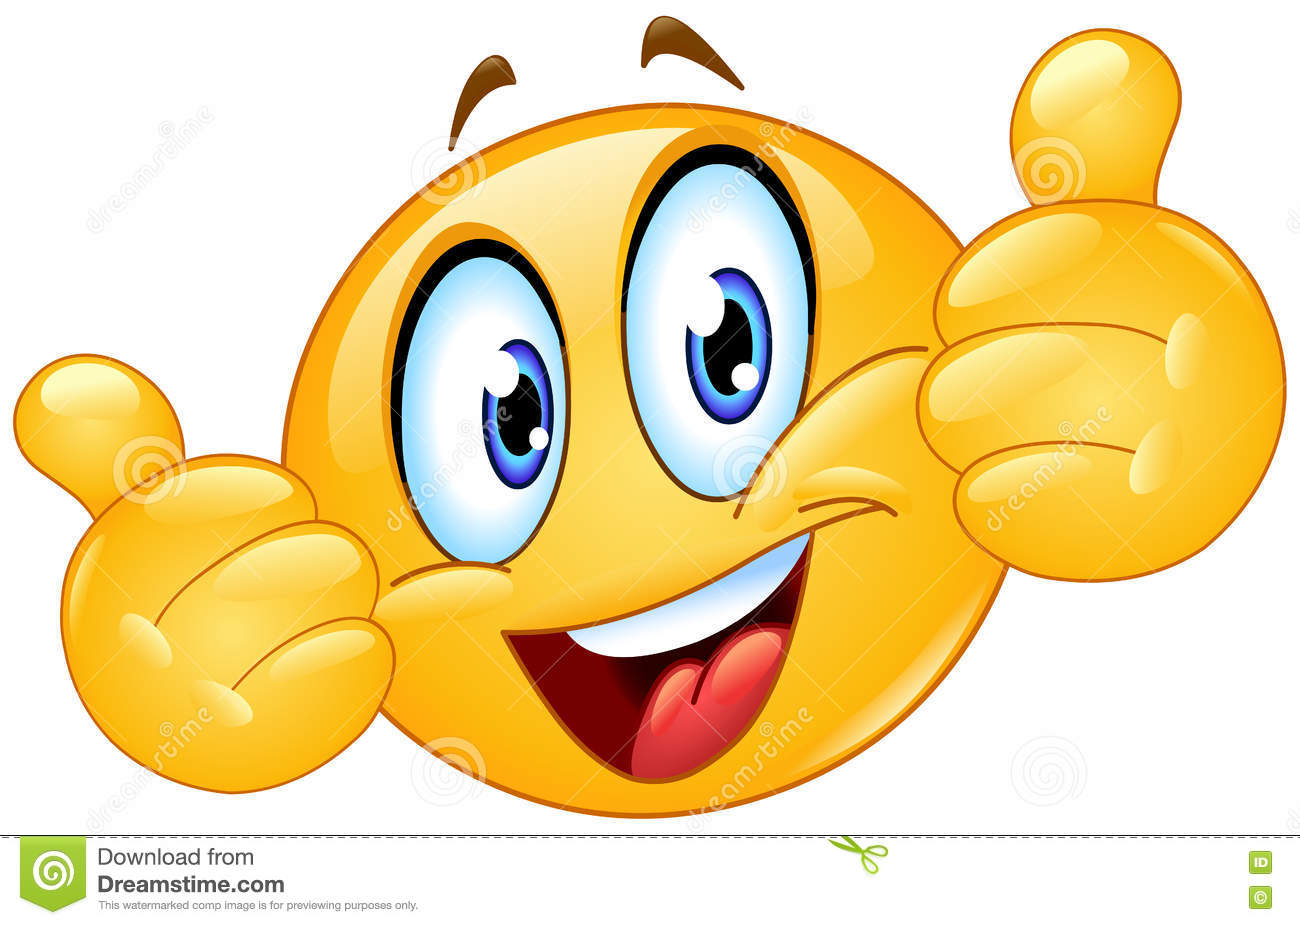 Thumbs up emoji svg freeuse library Thumbs Up Emoticon Emoji Stock Vector - Image: 57859992 svg freeuse library